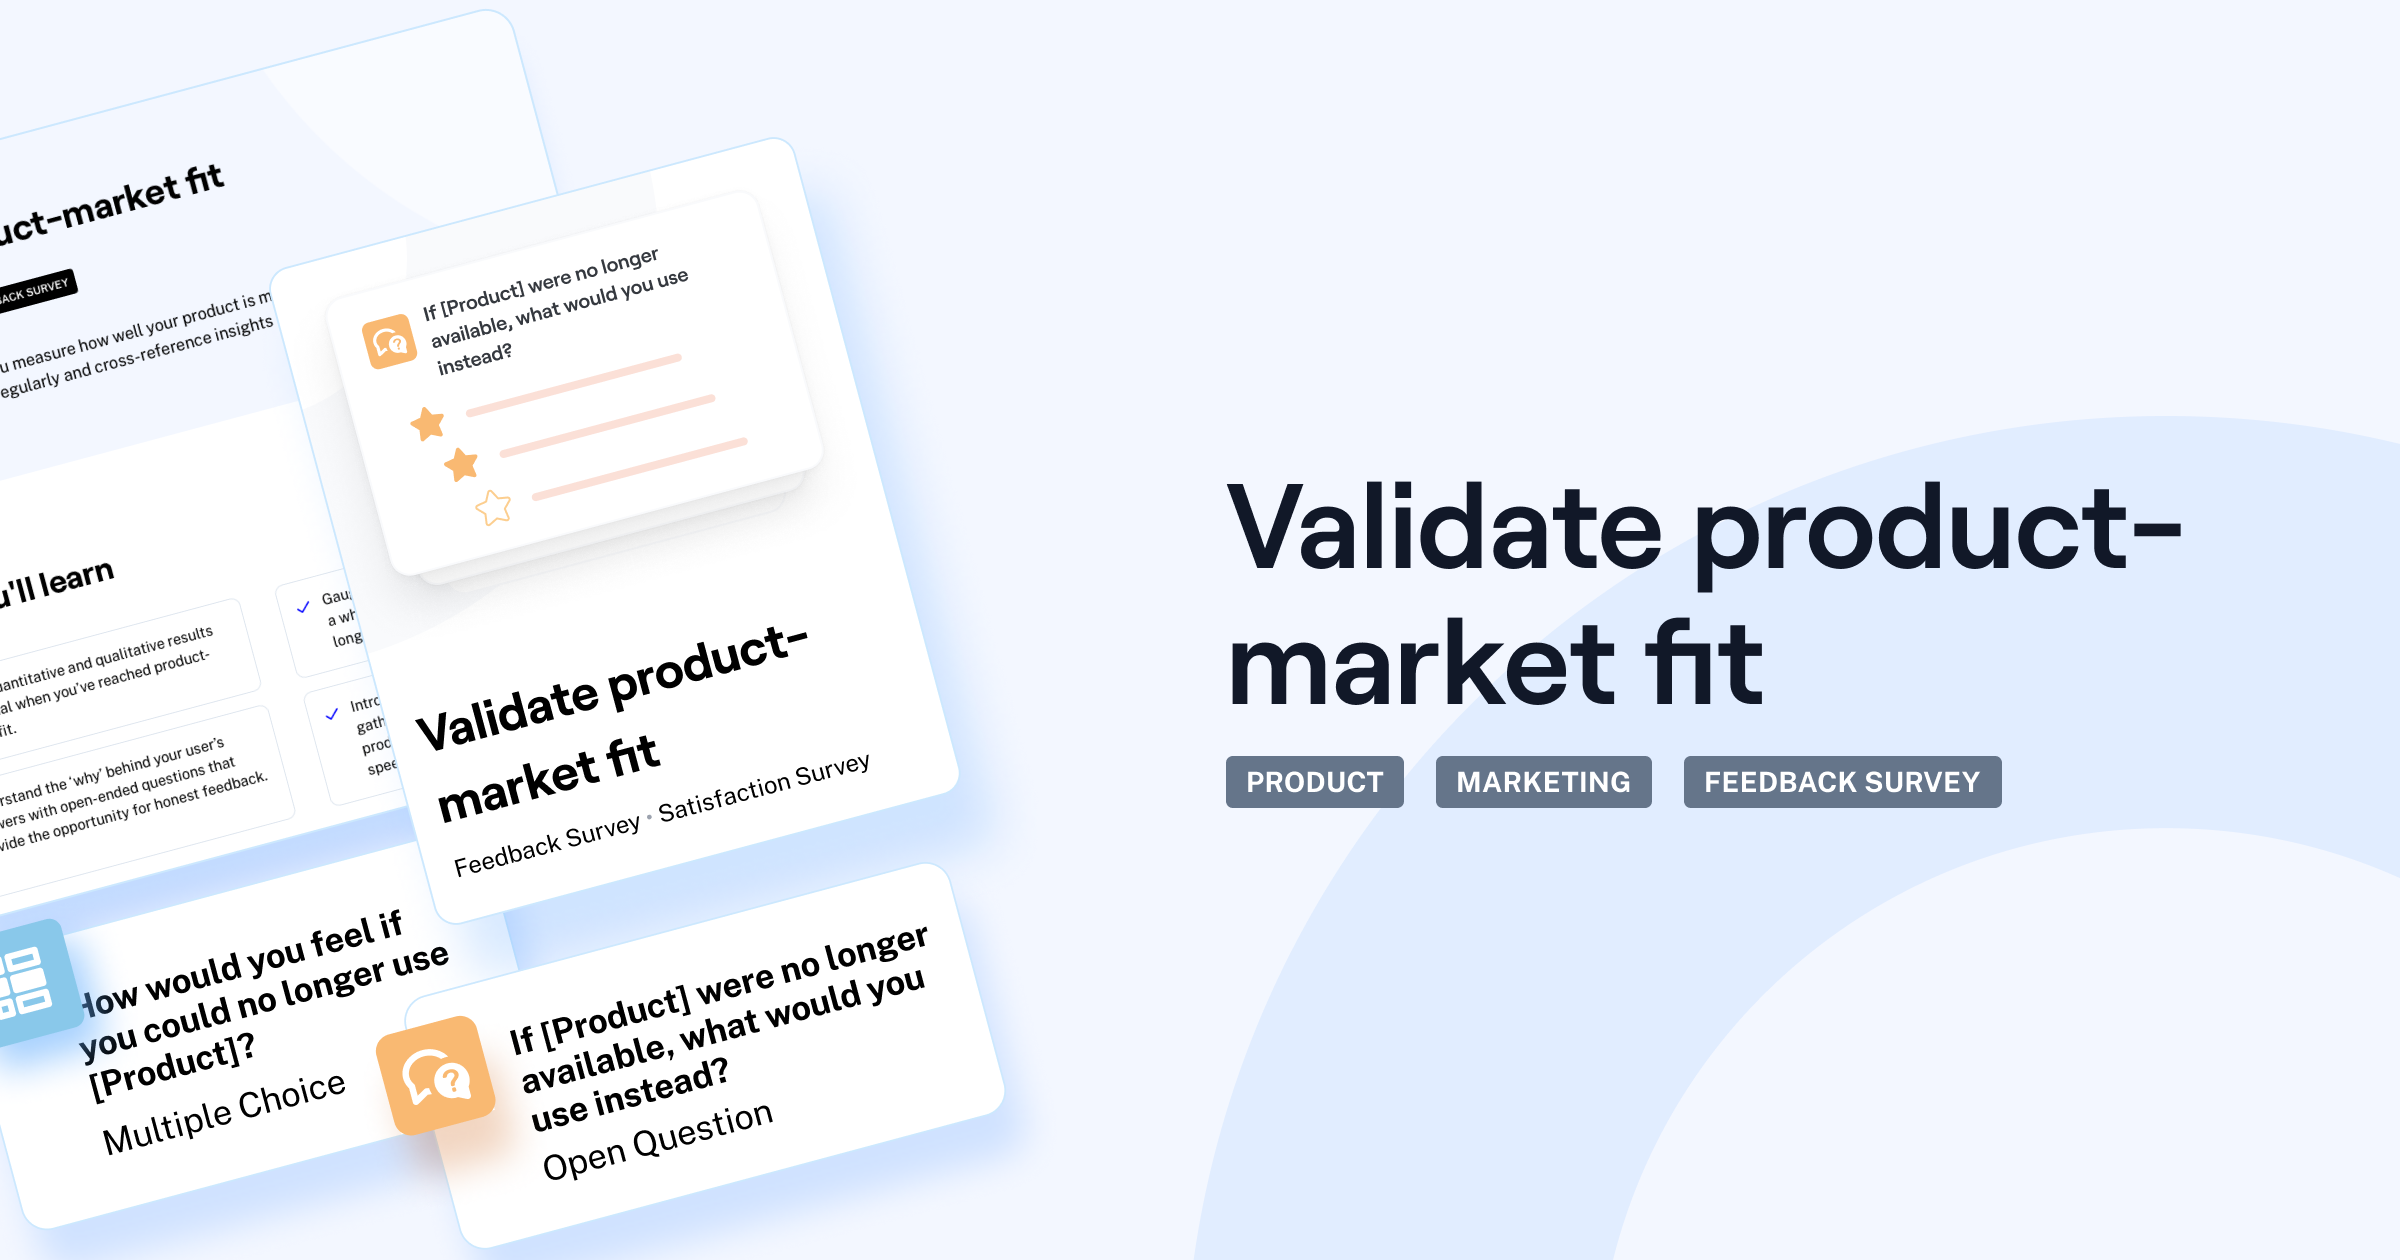 validate-product-market-fit-template